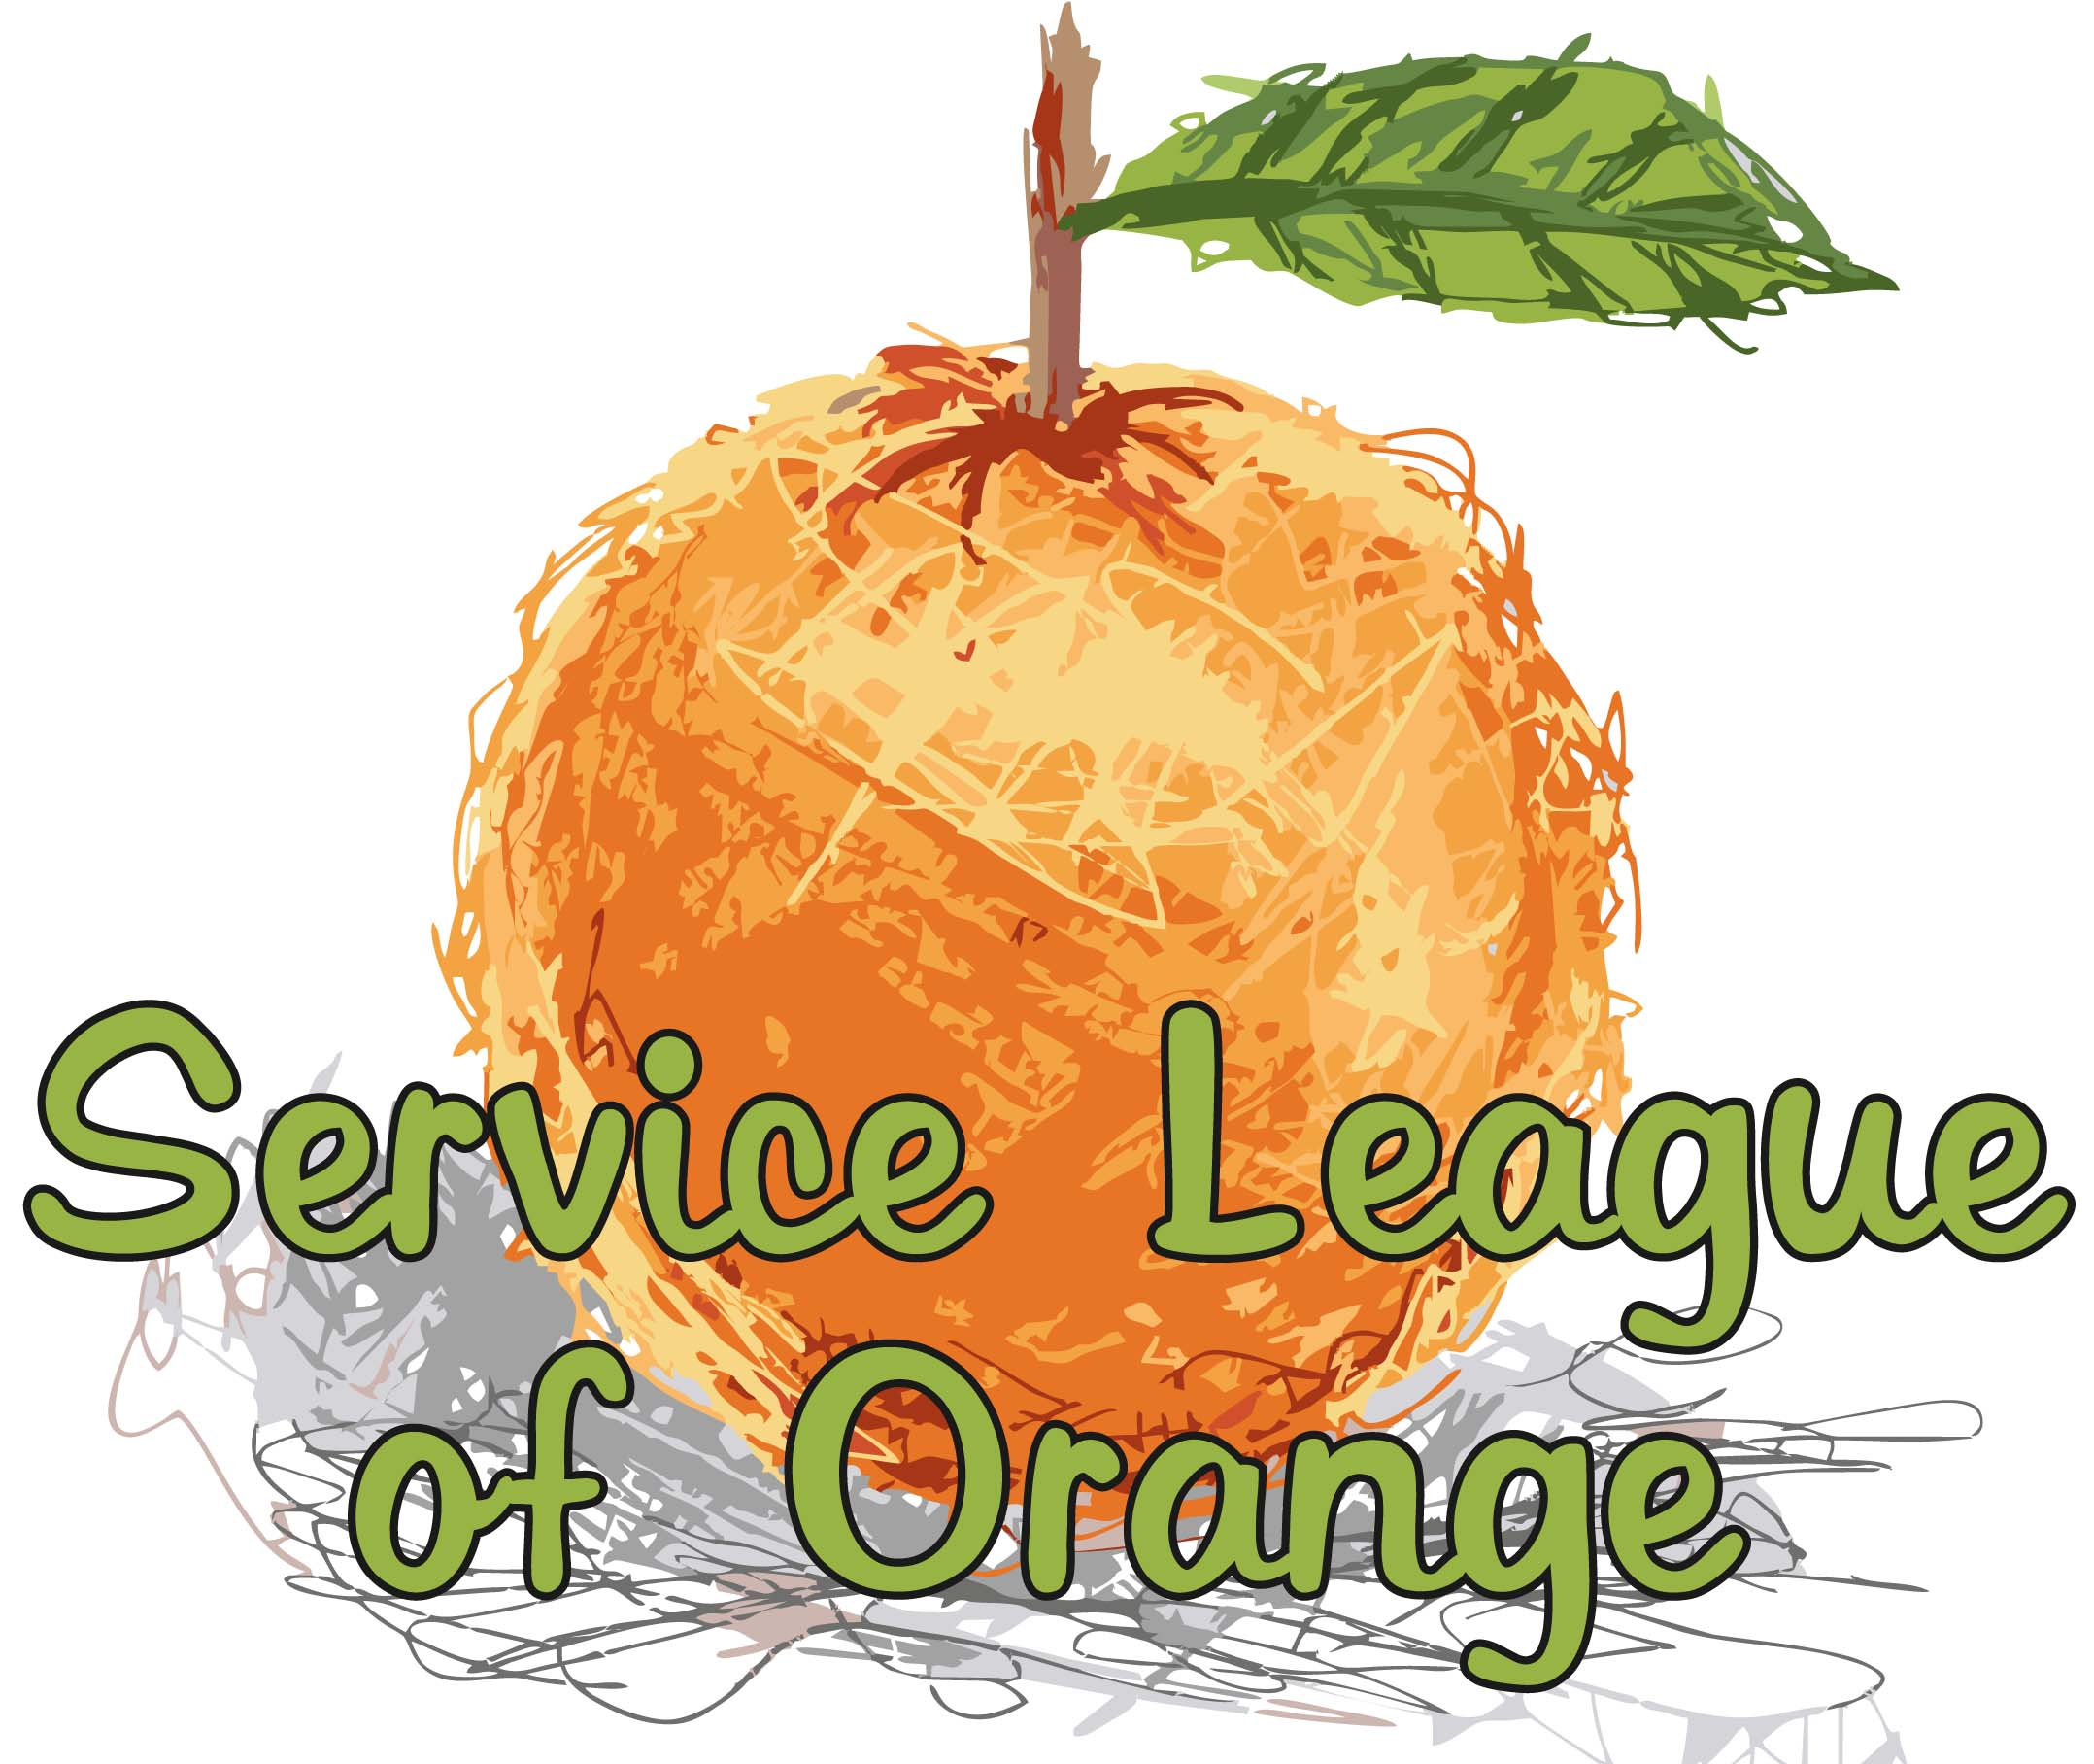 The Service League of Orange The Service League of Orange